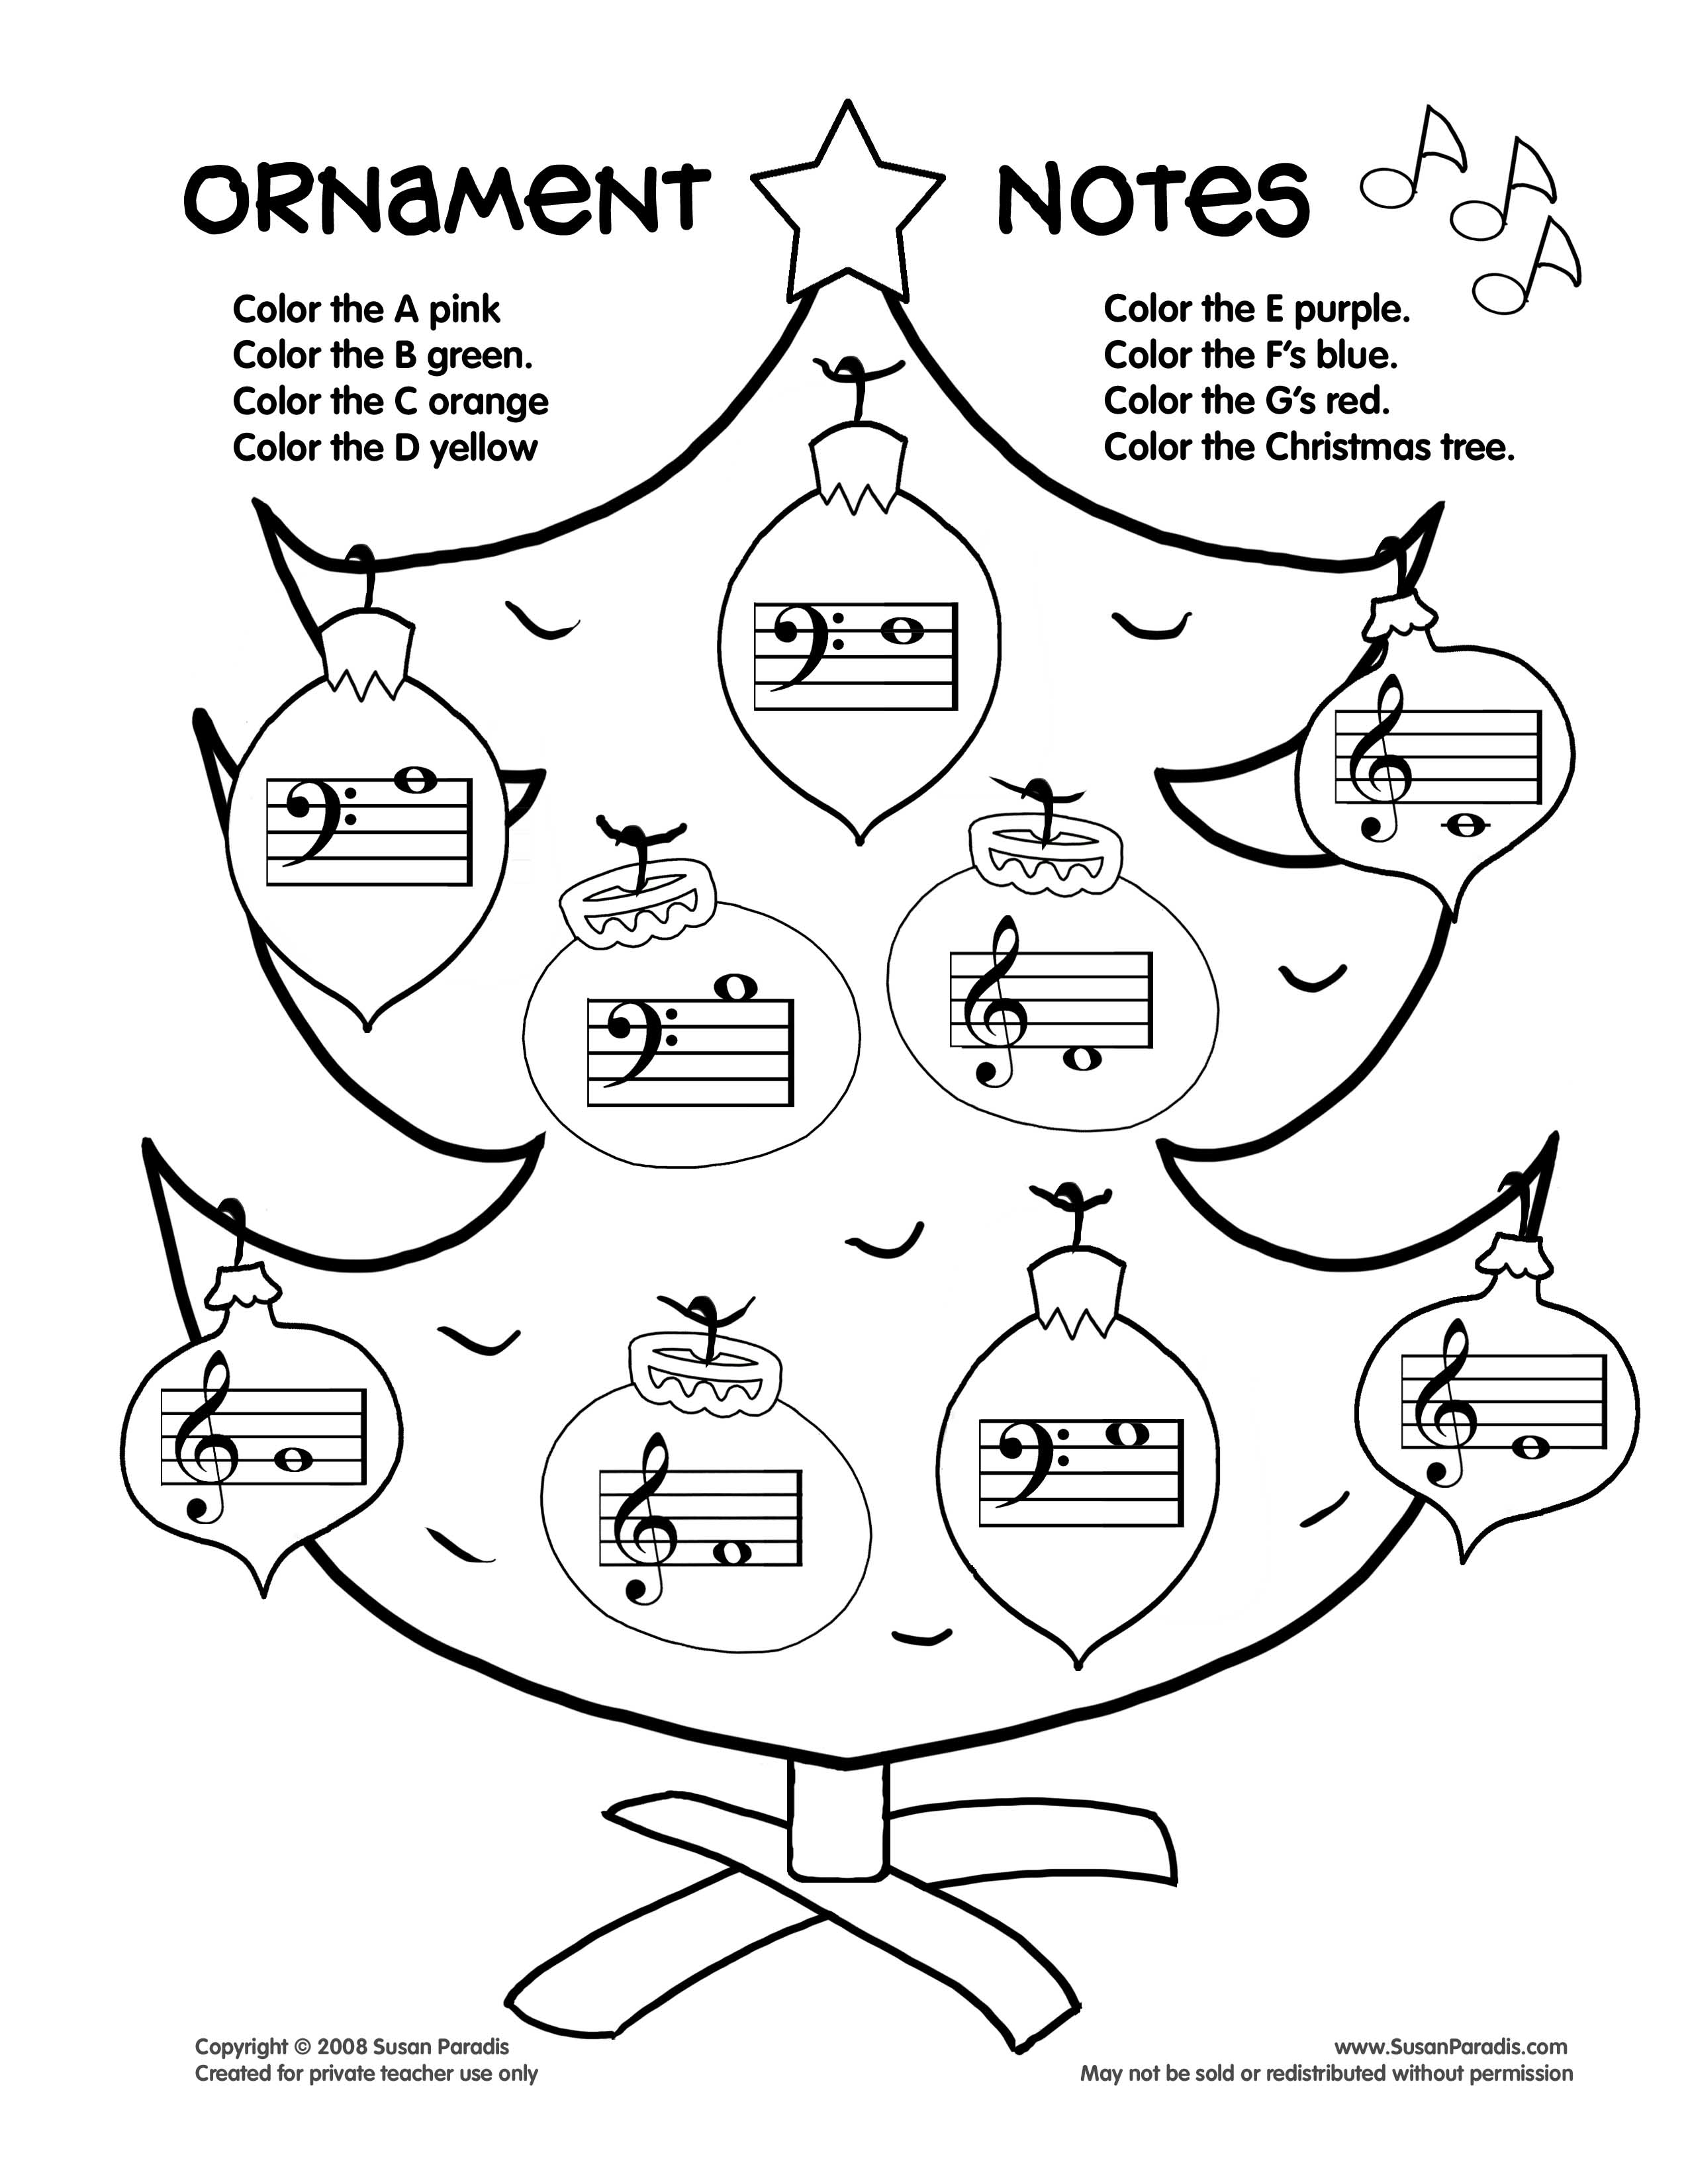 coloring notes free printable music notes coloring pages at getcolorings coloring notes